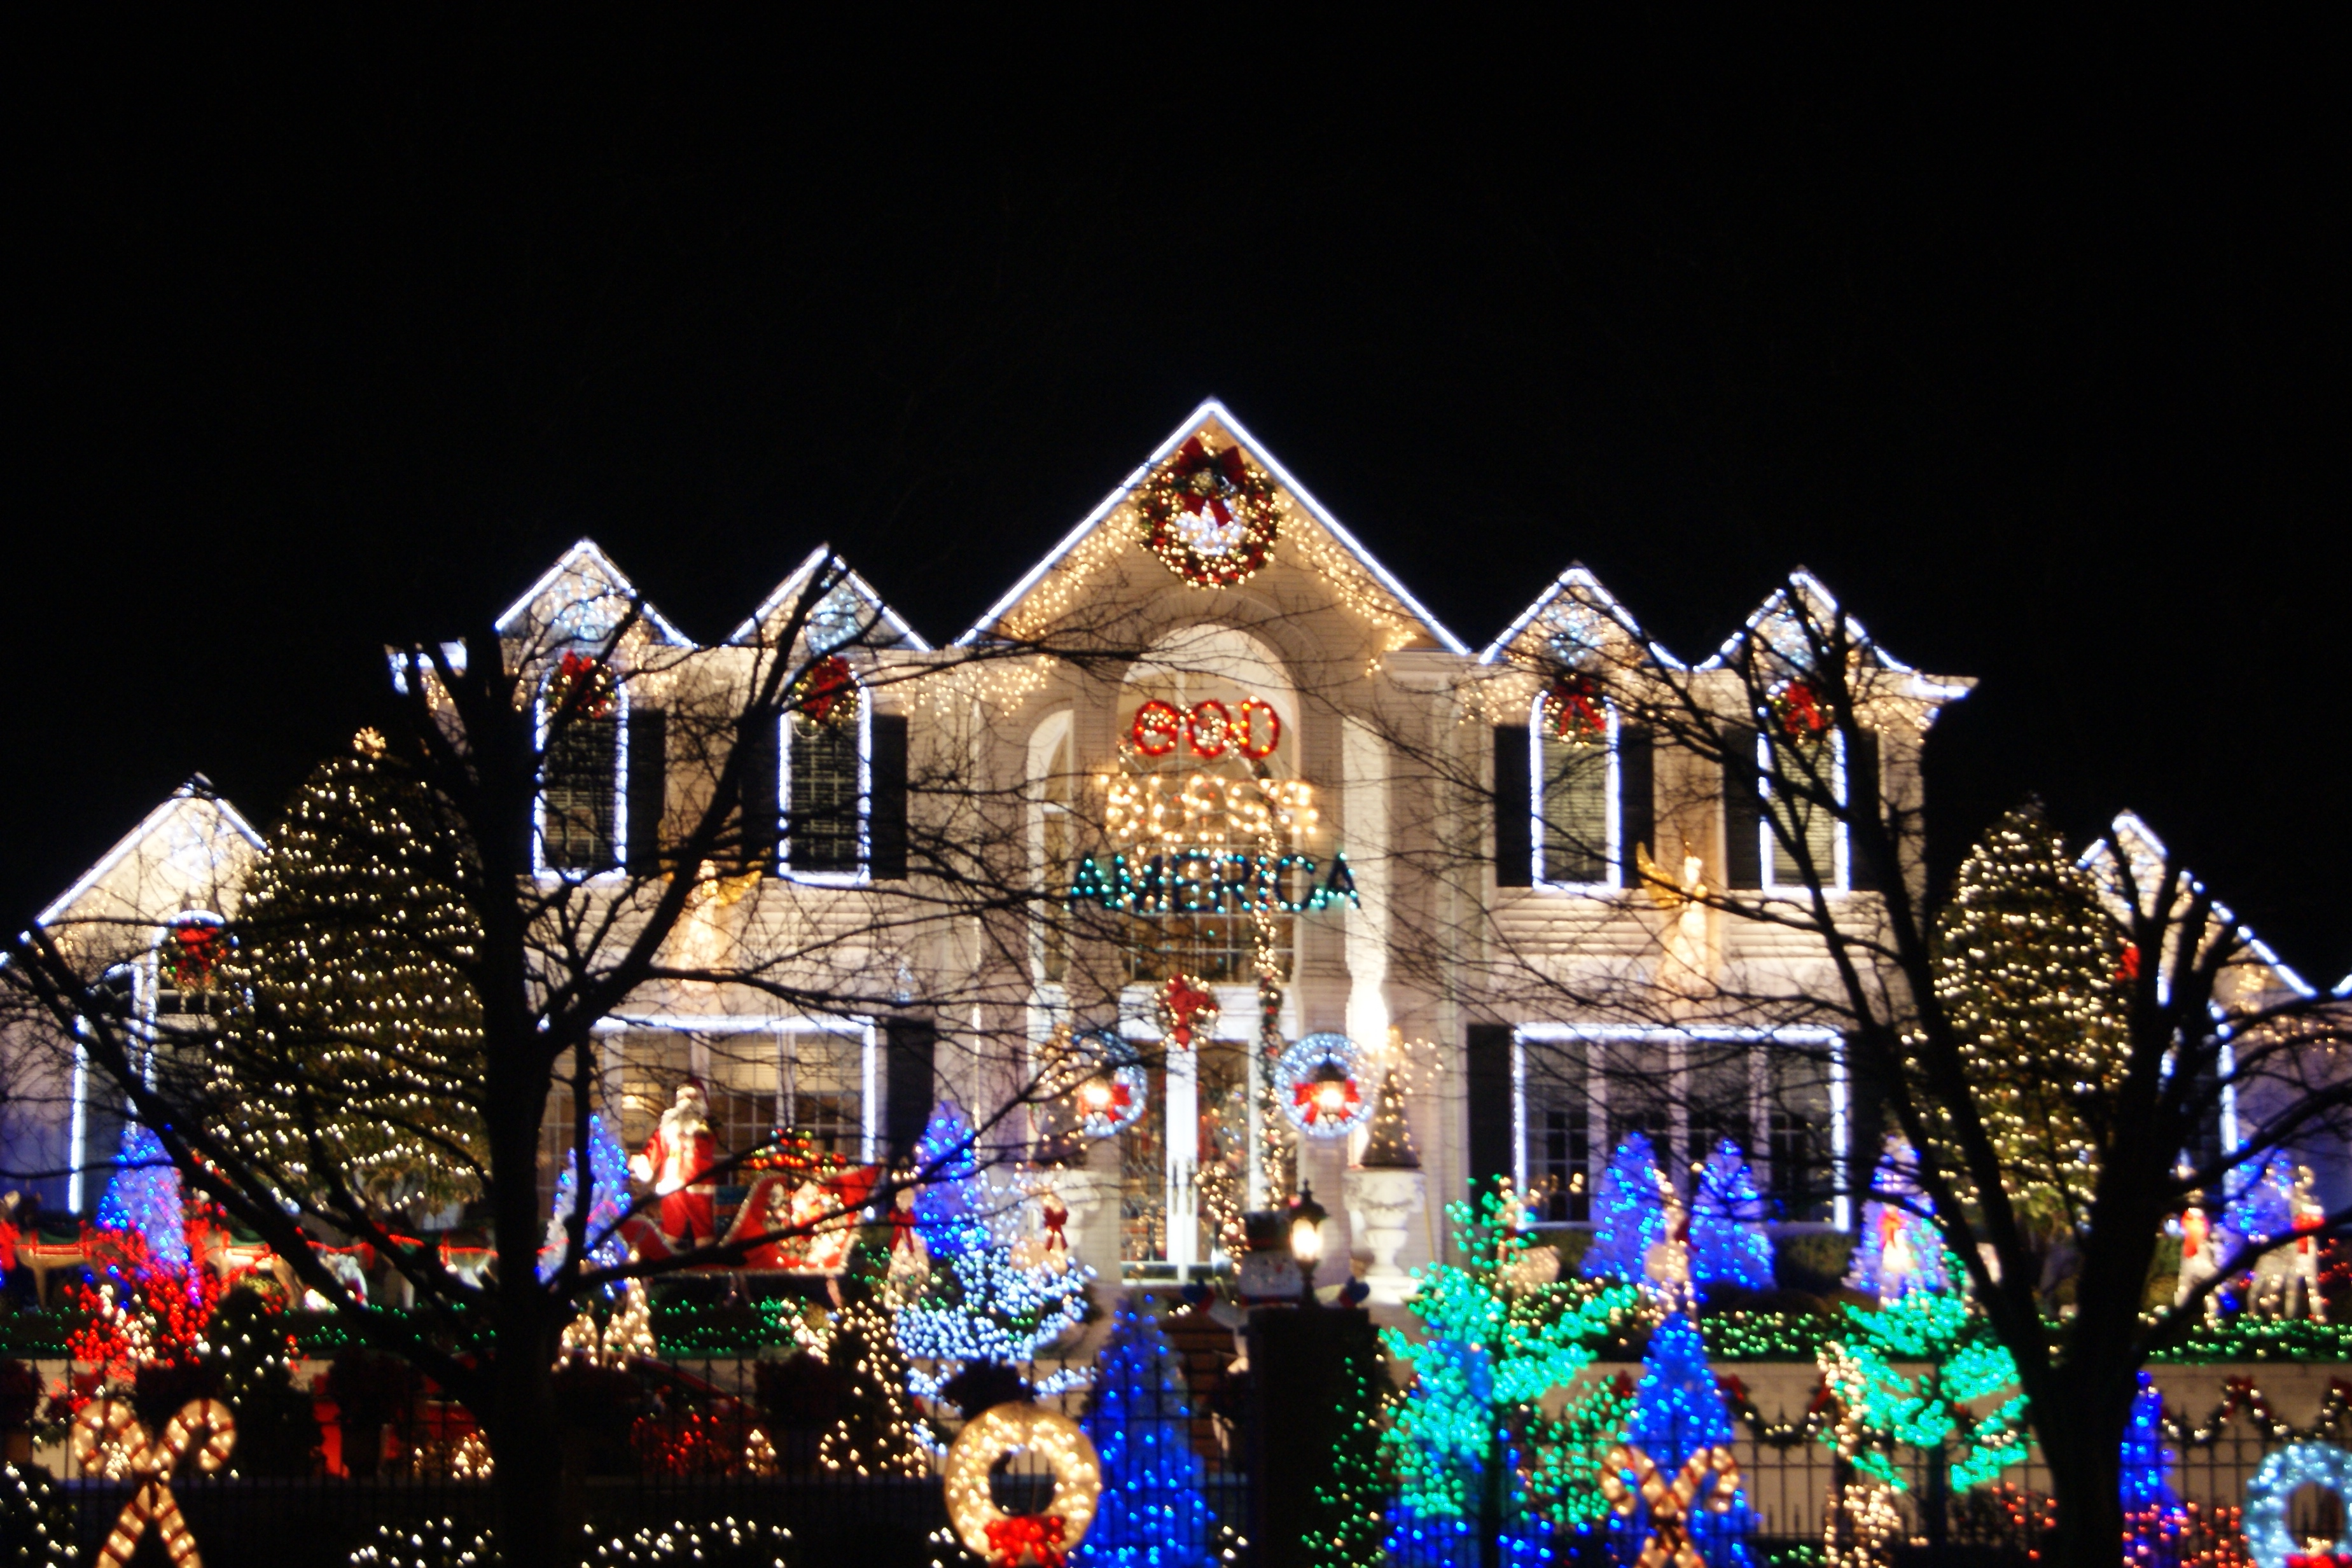 Why do we decorate with christmas lights - This Was Such A Simple Holiday Family Outing But We Really Had A Great Time I Encourage You To Do The Same With Your Own Families